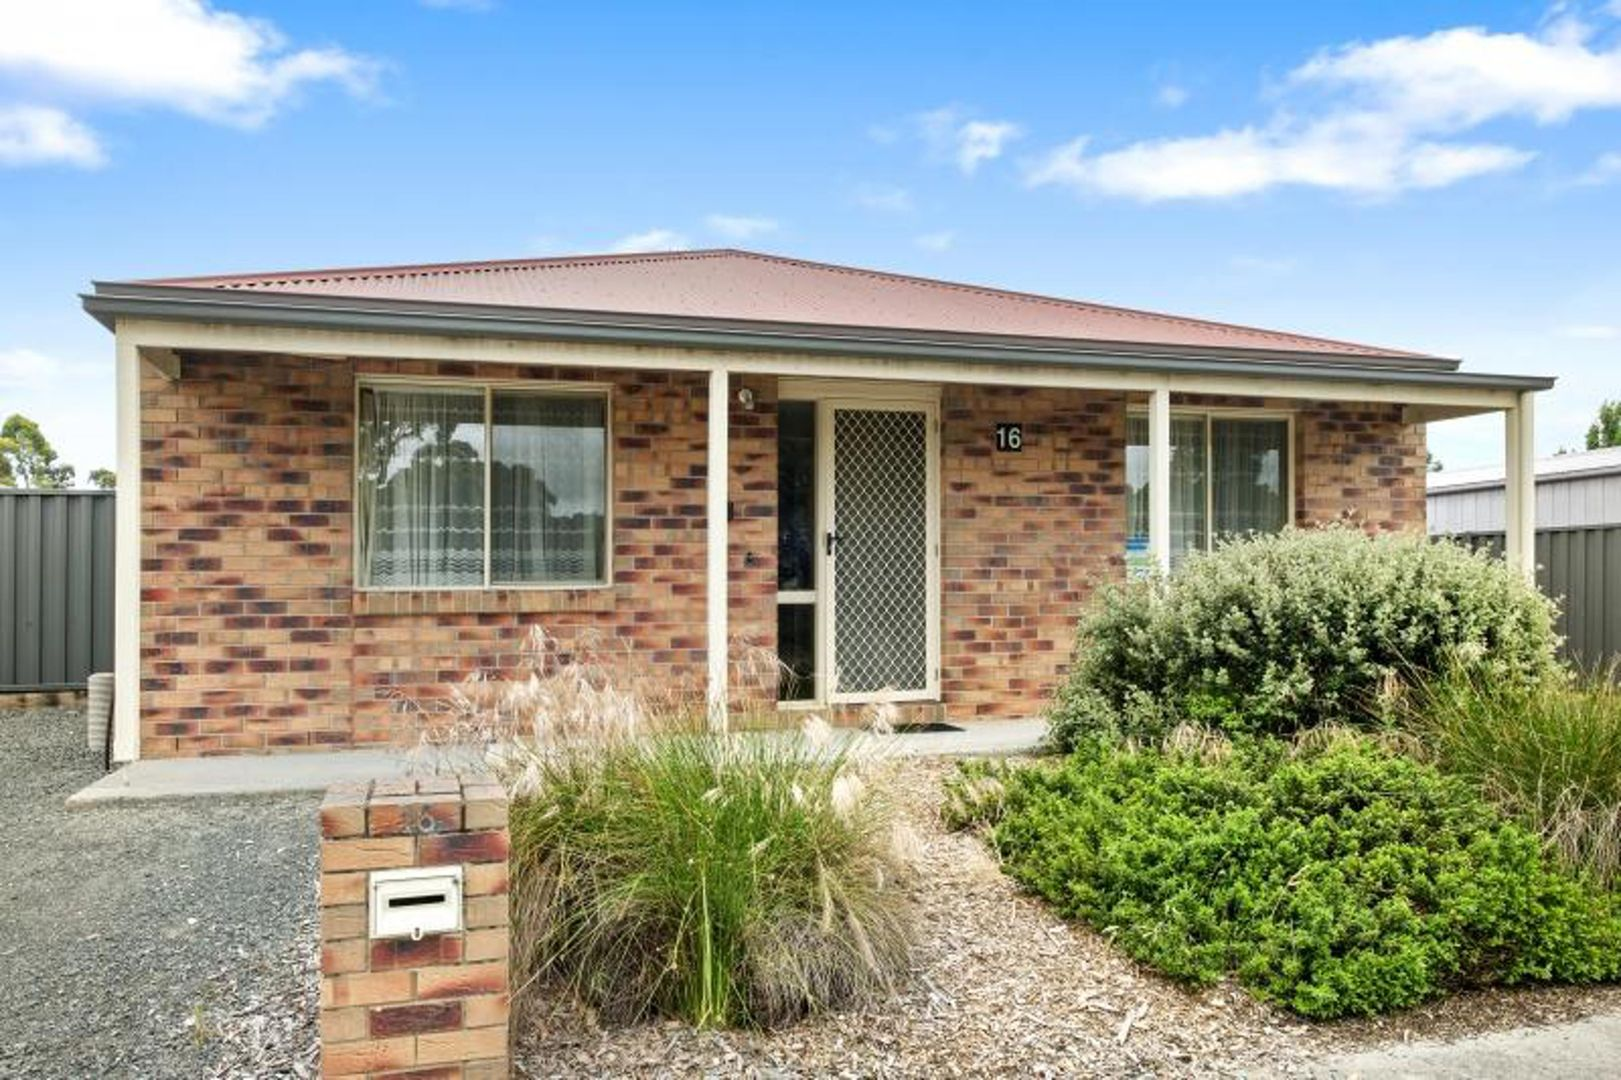 16 Jemacra Place, Mount Clear VIC 3350, Image 0